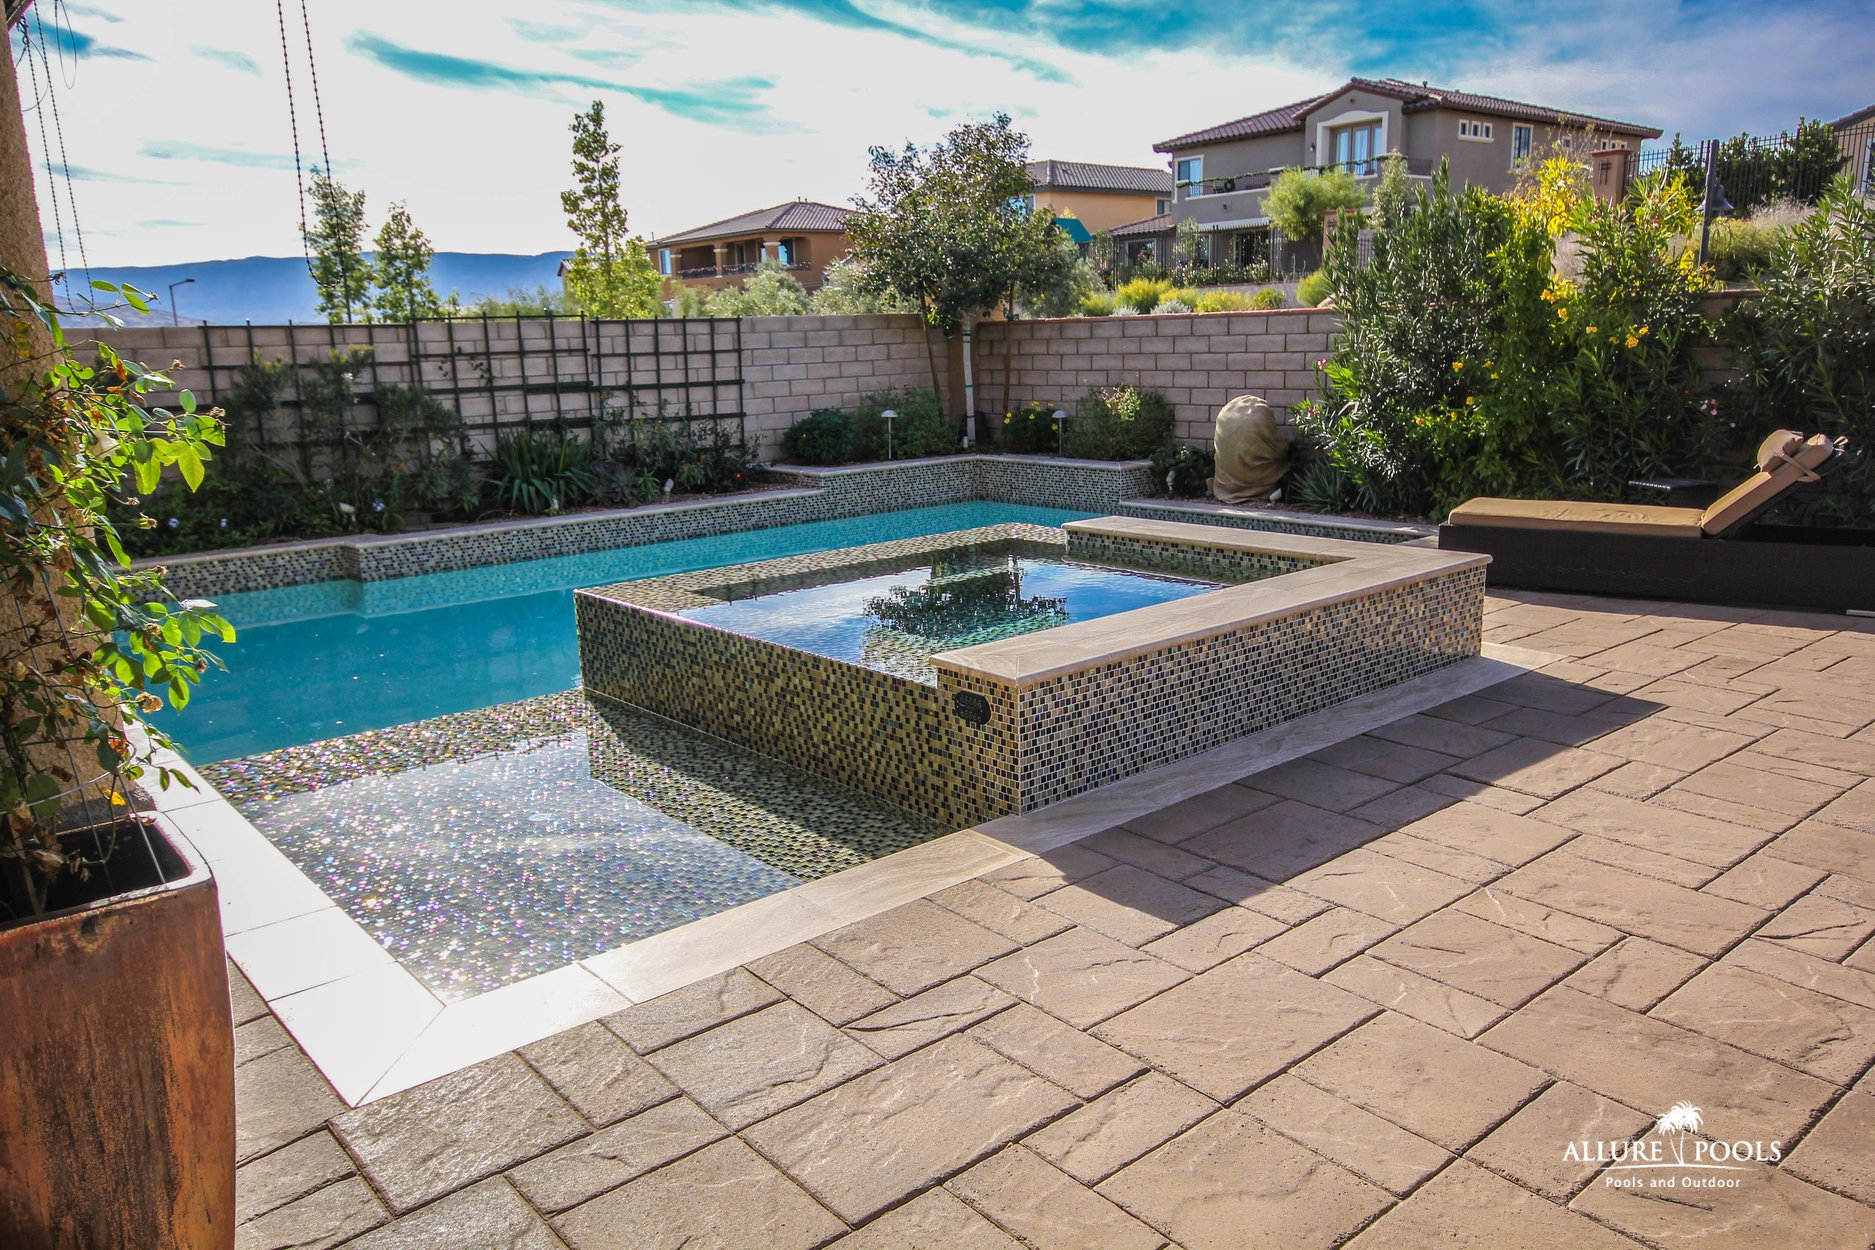 Charmant ... Spa #007 By Allure Pools And Outdoor ...